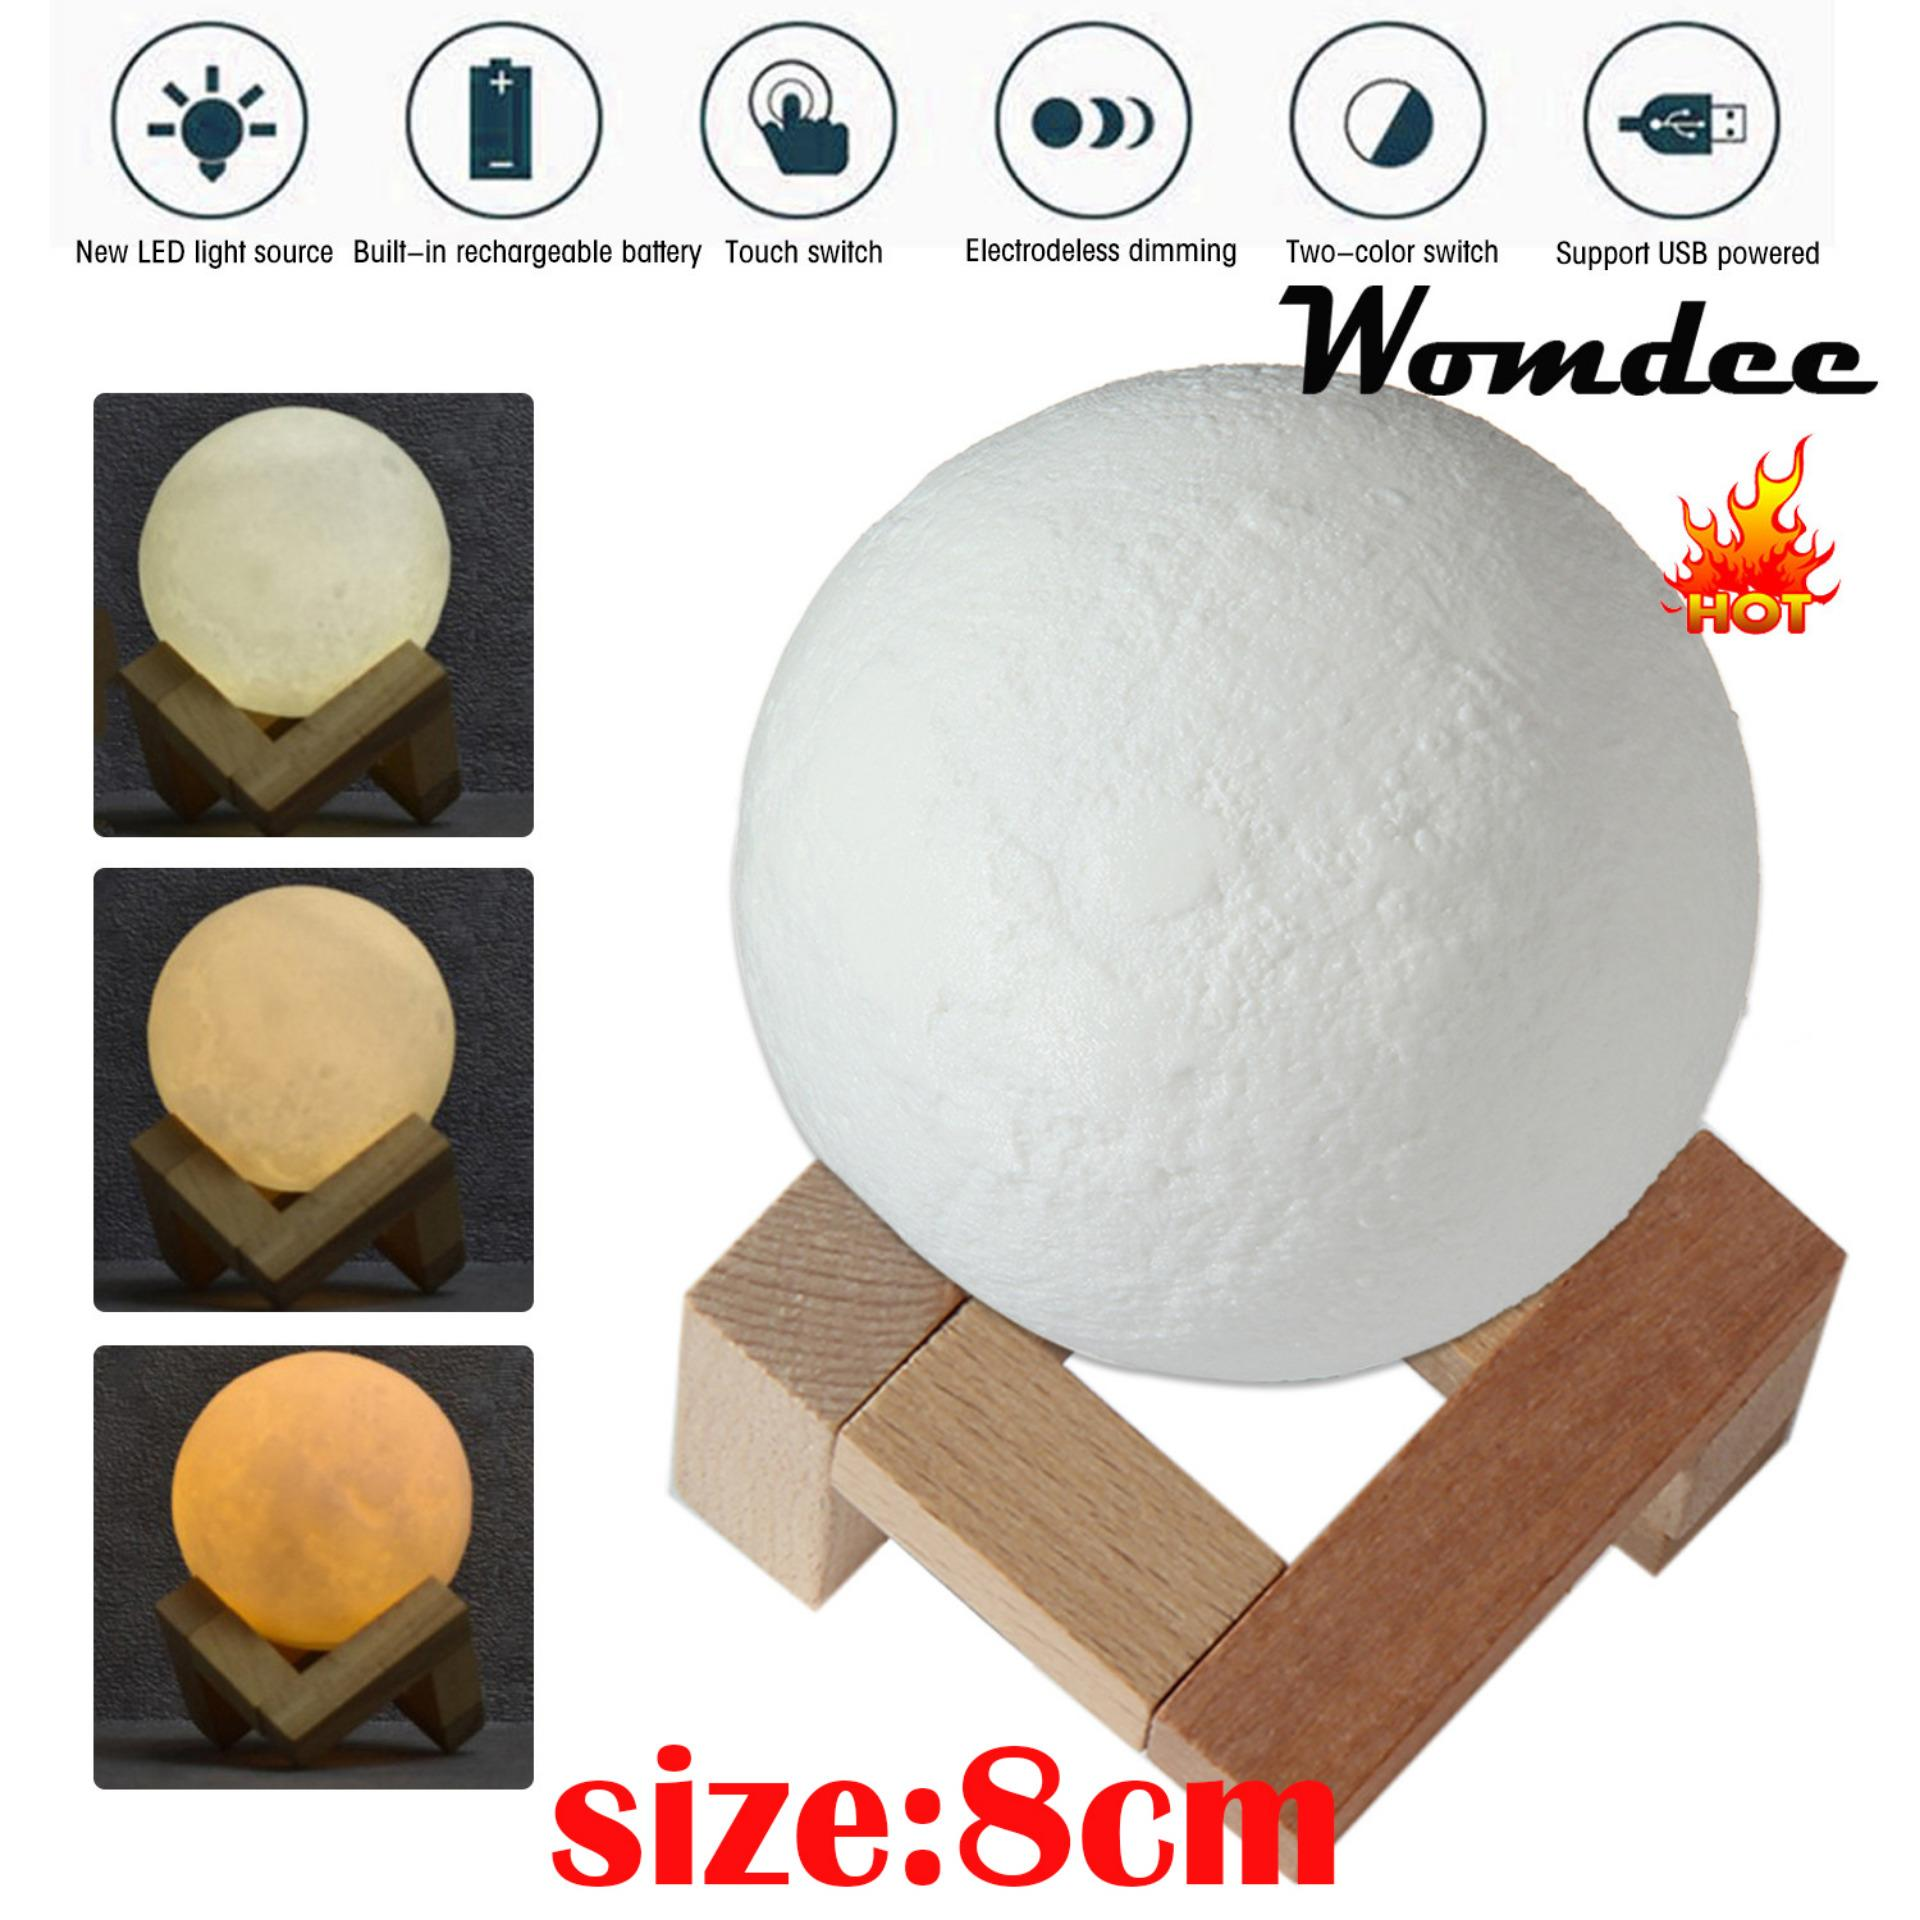 Night Light For Sale Mini Lights Prices Brands Review In Ac 3 Way Desk Parts Touch Control Sensor Lamp Switch Dimmer Womdee 3d Moon 8cm Brightness Usb Charging Table Moonlight With Wooden